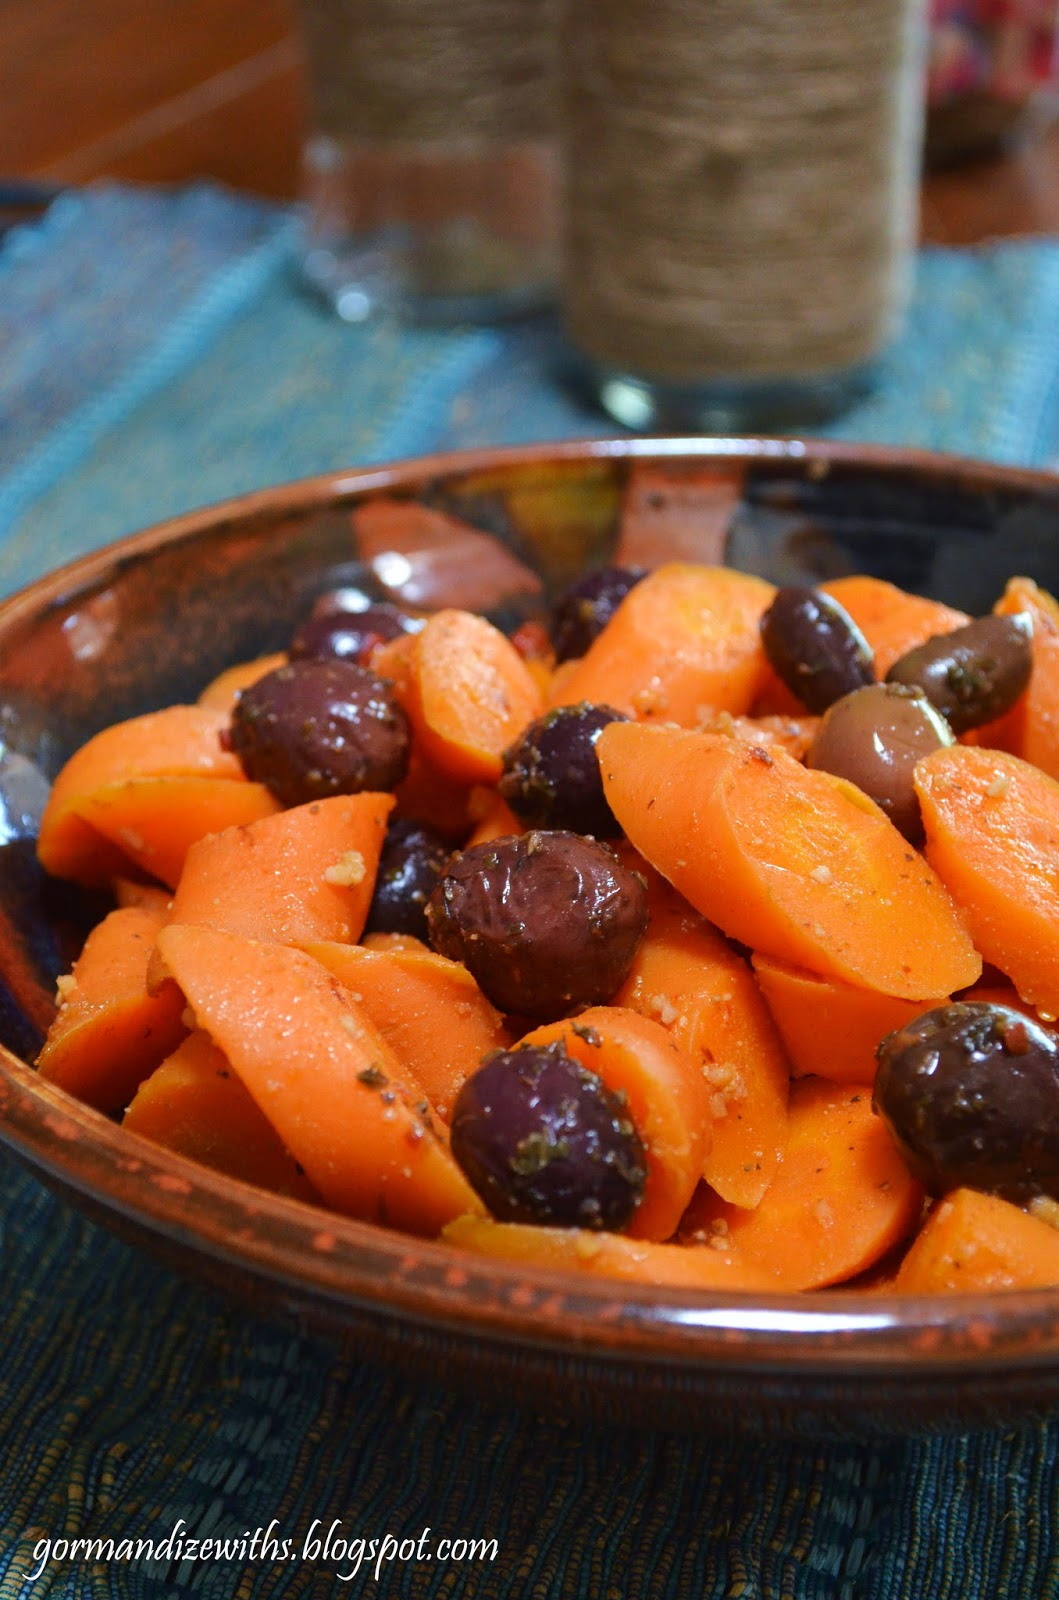 Gormandize: Tunisian Cooked Carrot & Olive Salad